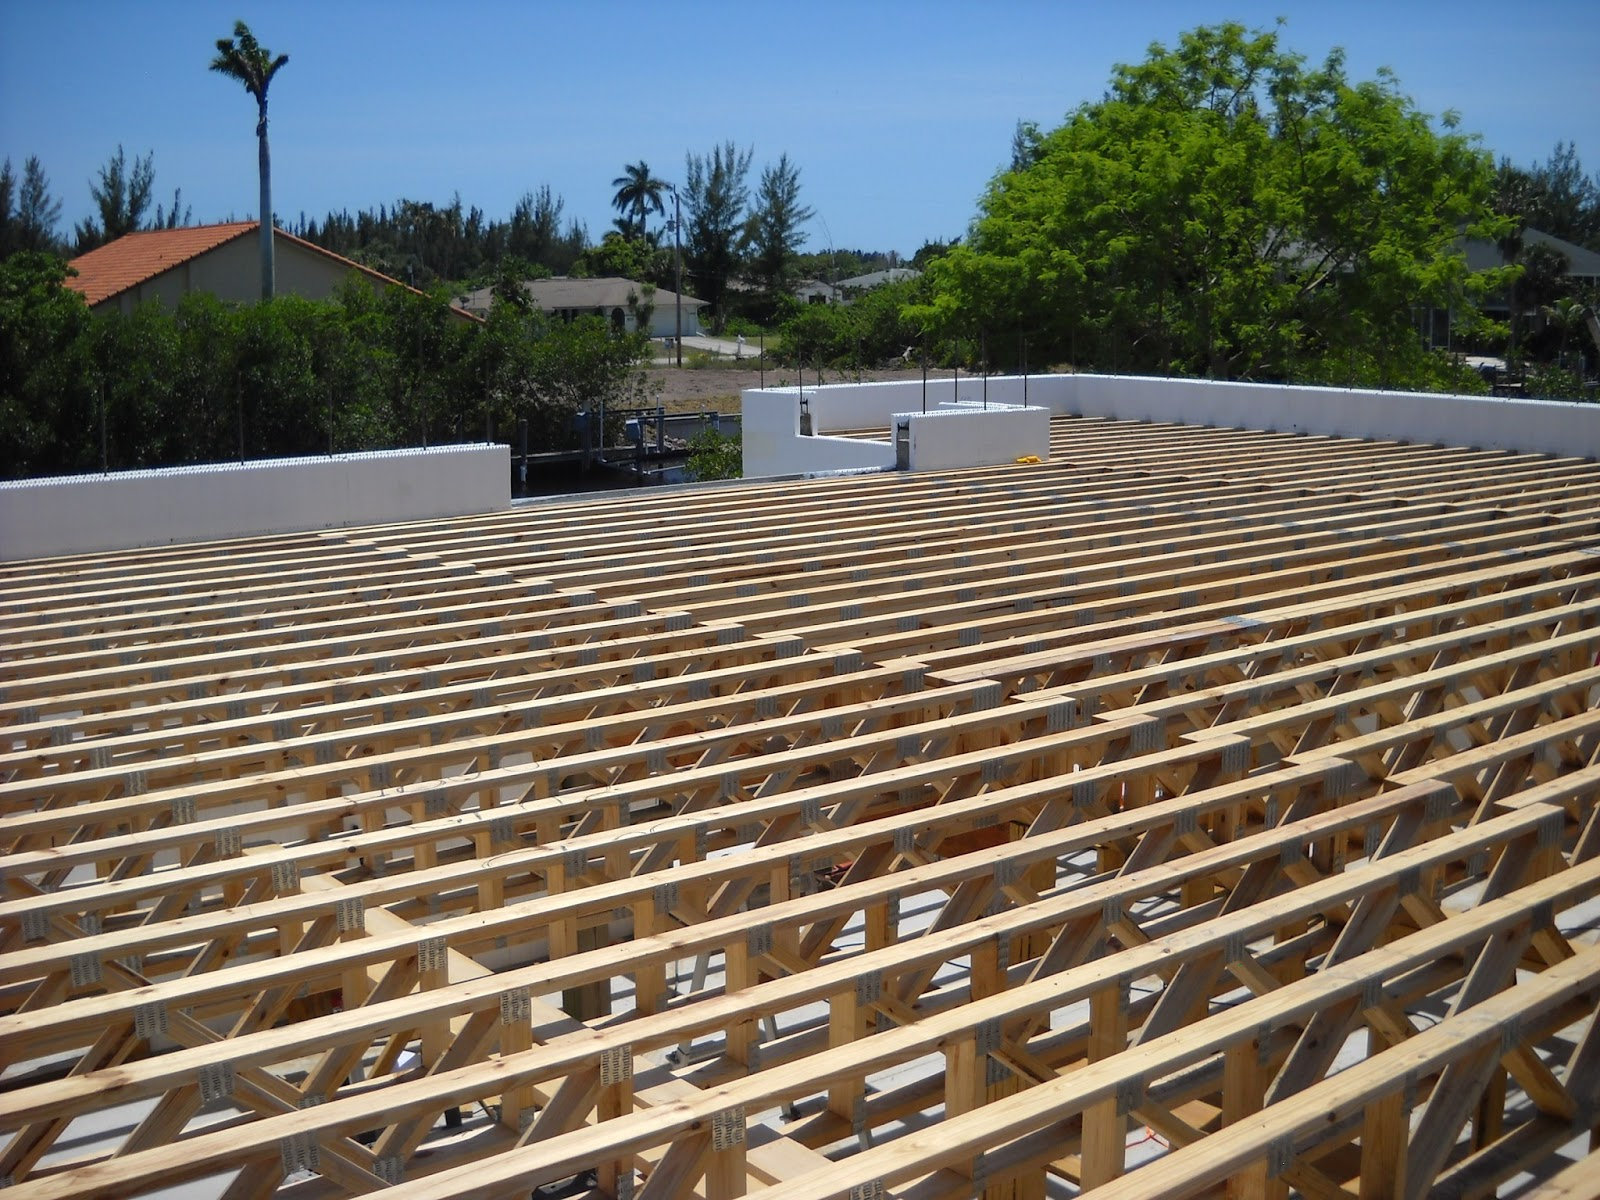 Pine island home builder building icf insulated for Concrete house forms